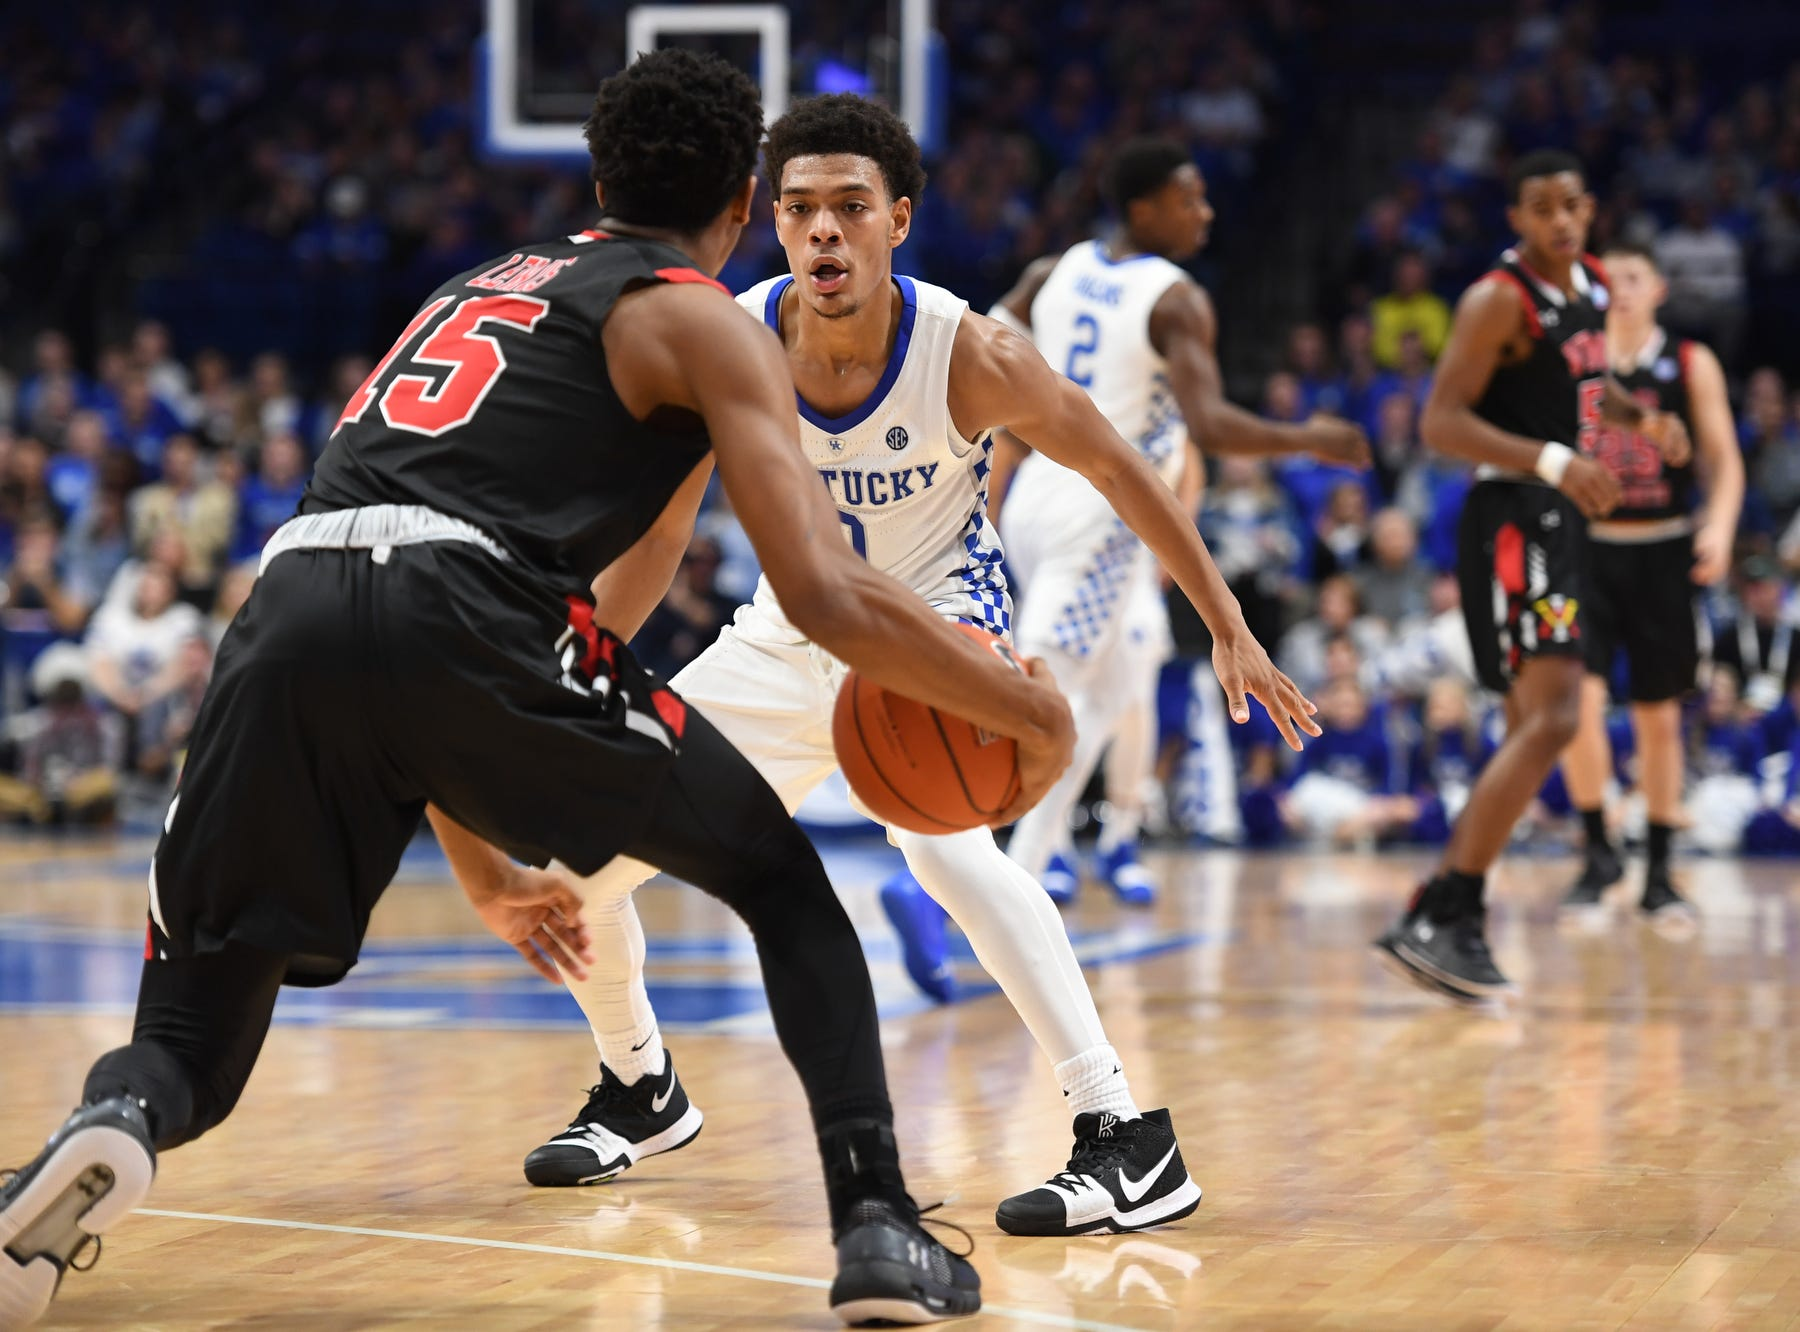 UK G Quade Green defends the ball during the University of Kentucky mens basketball game against VMI at Rupp Arena in Lexington, Kentucky on Sunday, November 18, 2018.